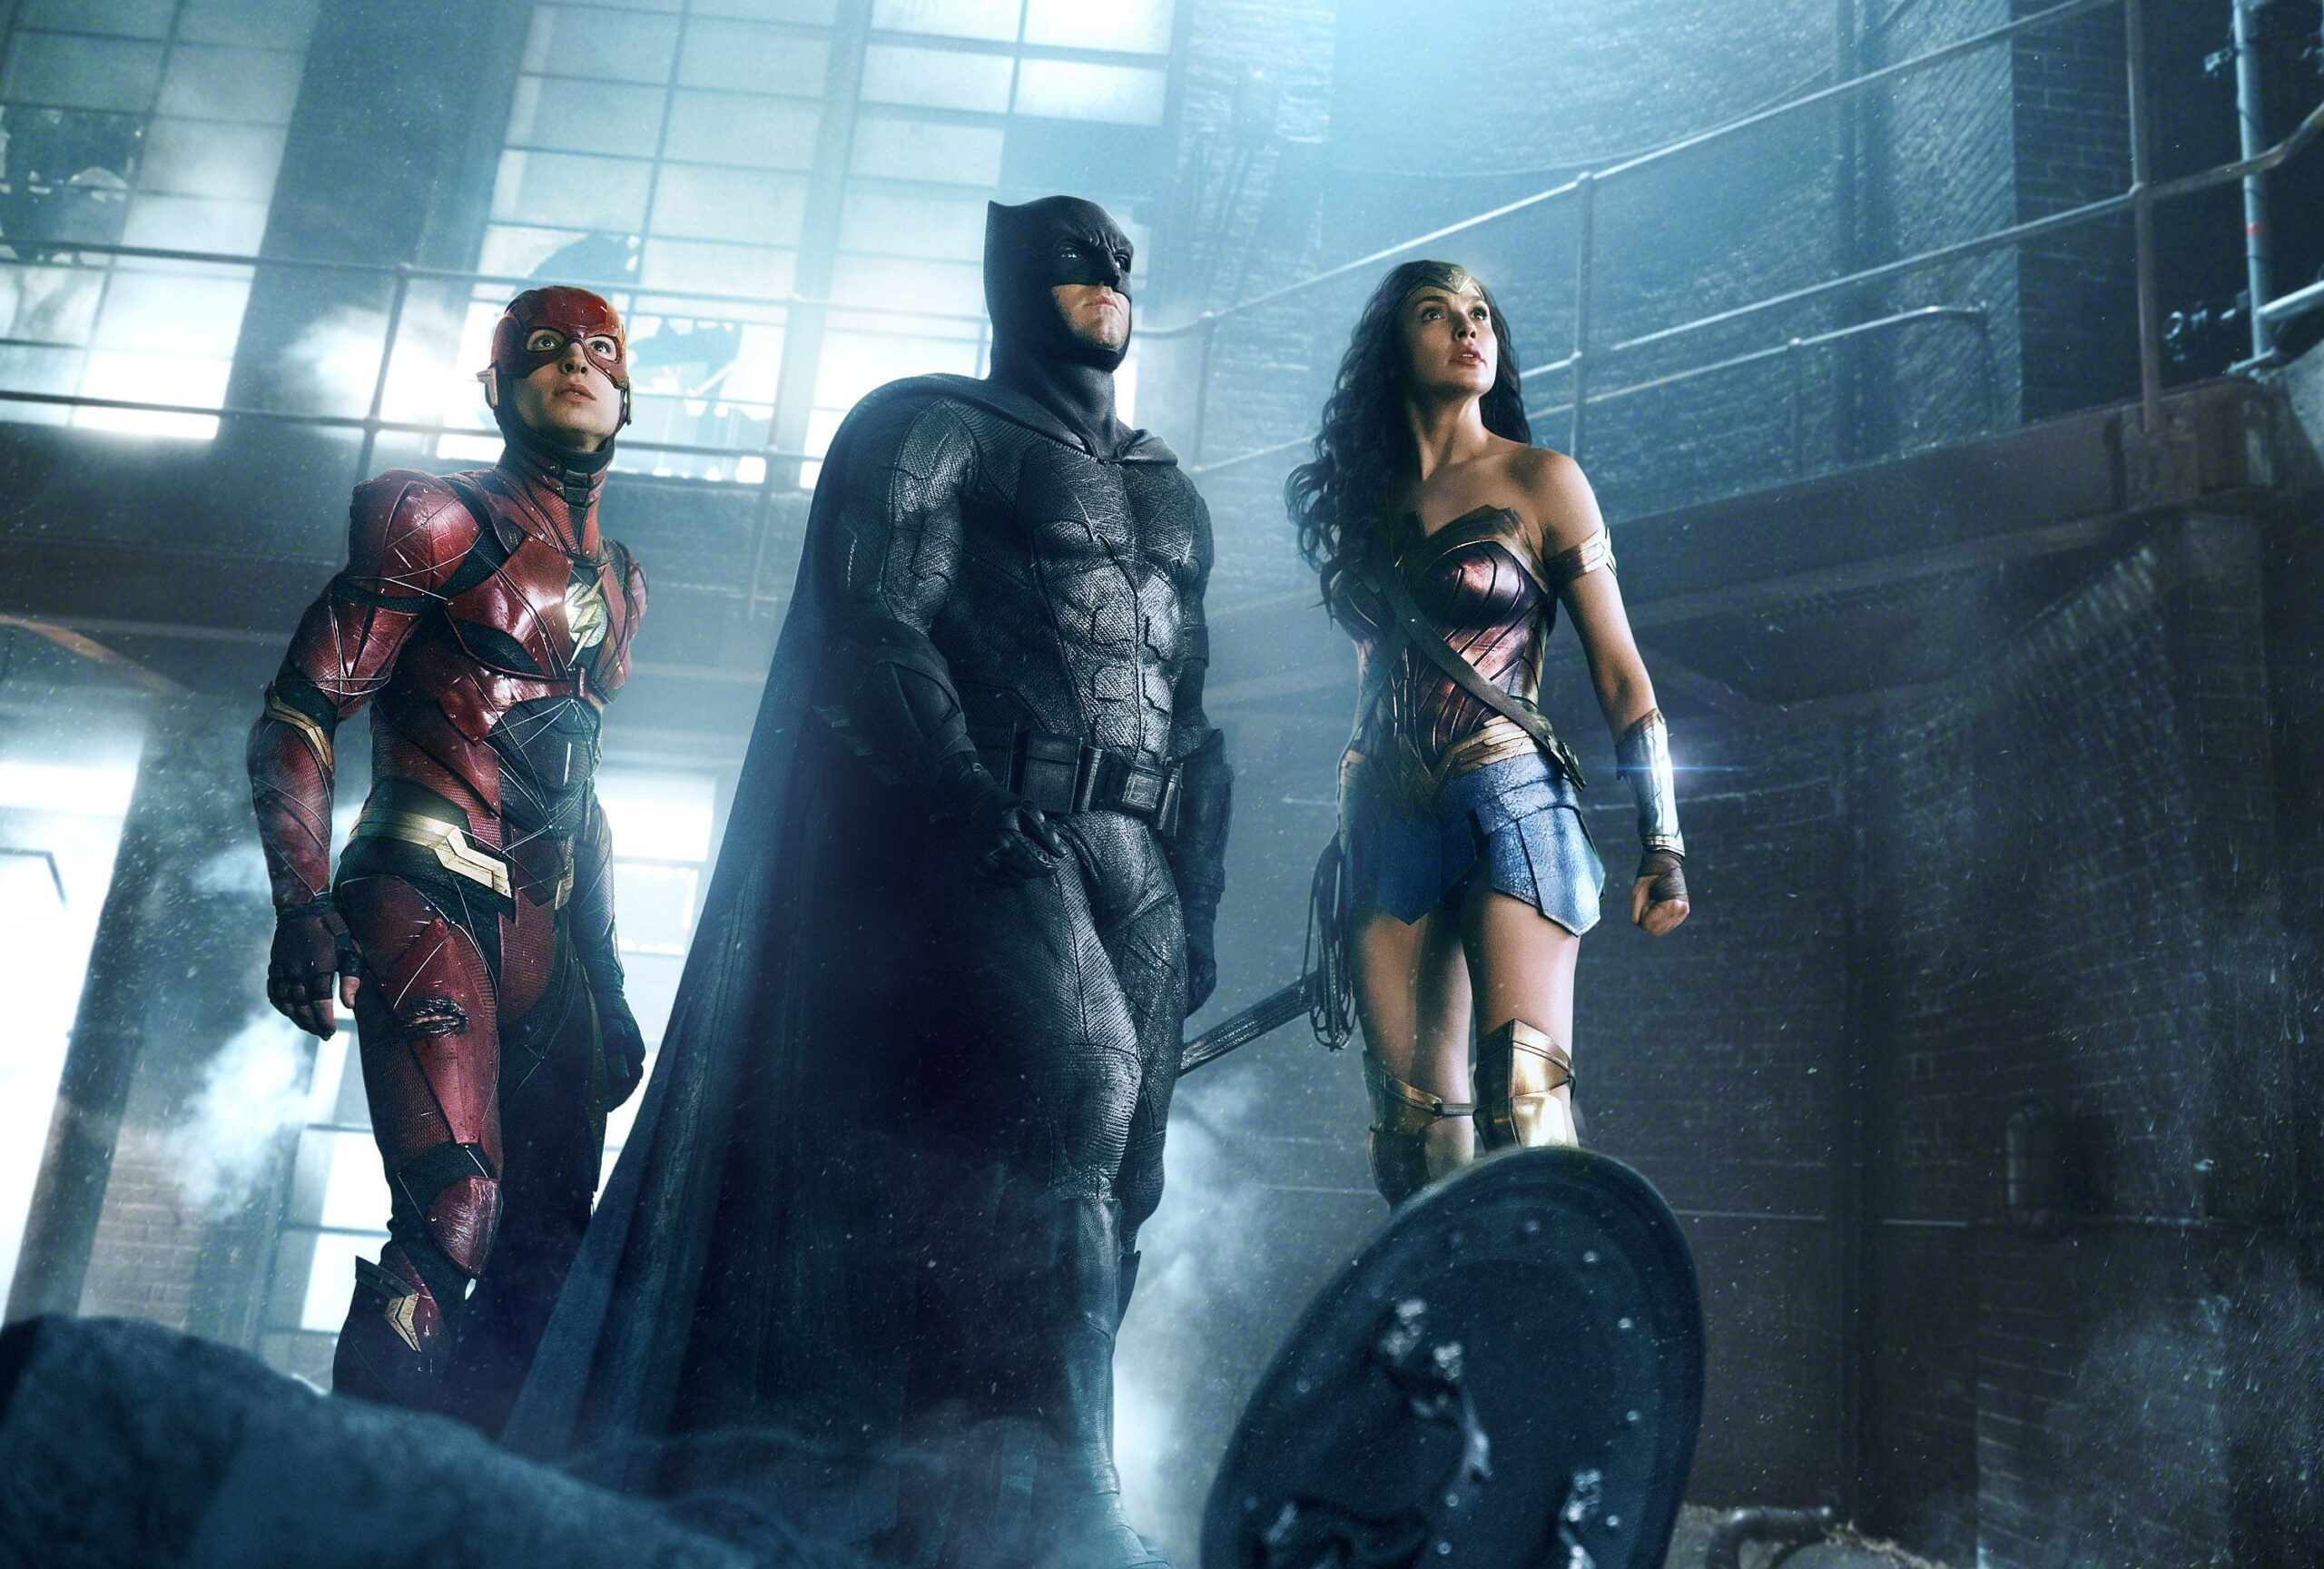 Dissecting 2017's 'Justice League' (and What It Missed About Characterization)